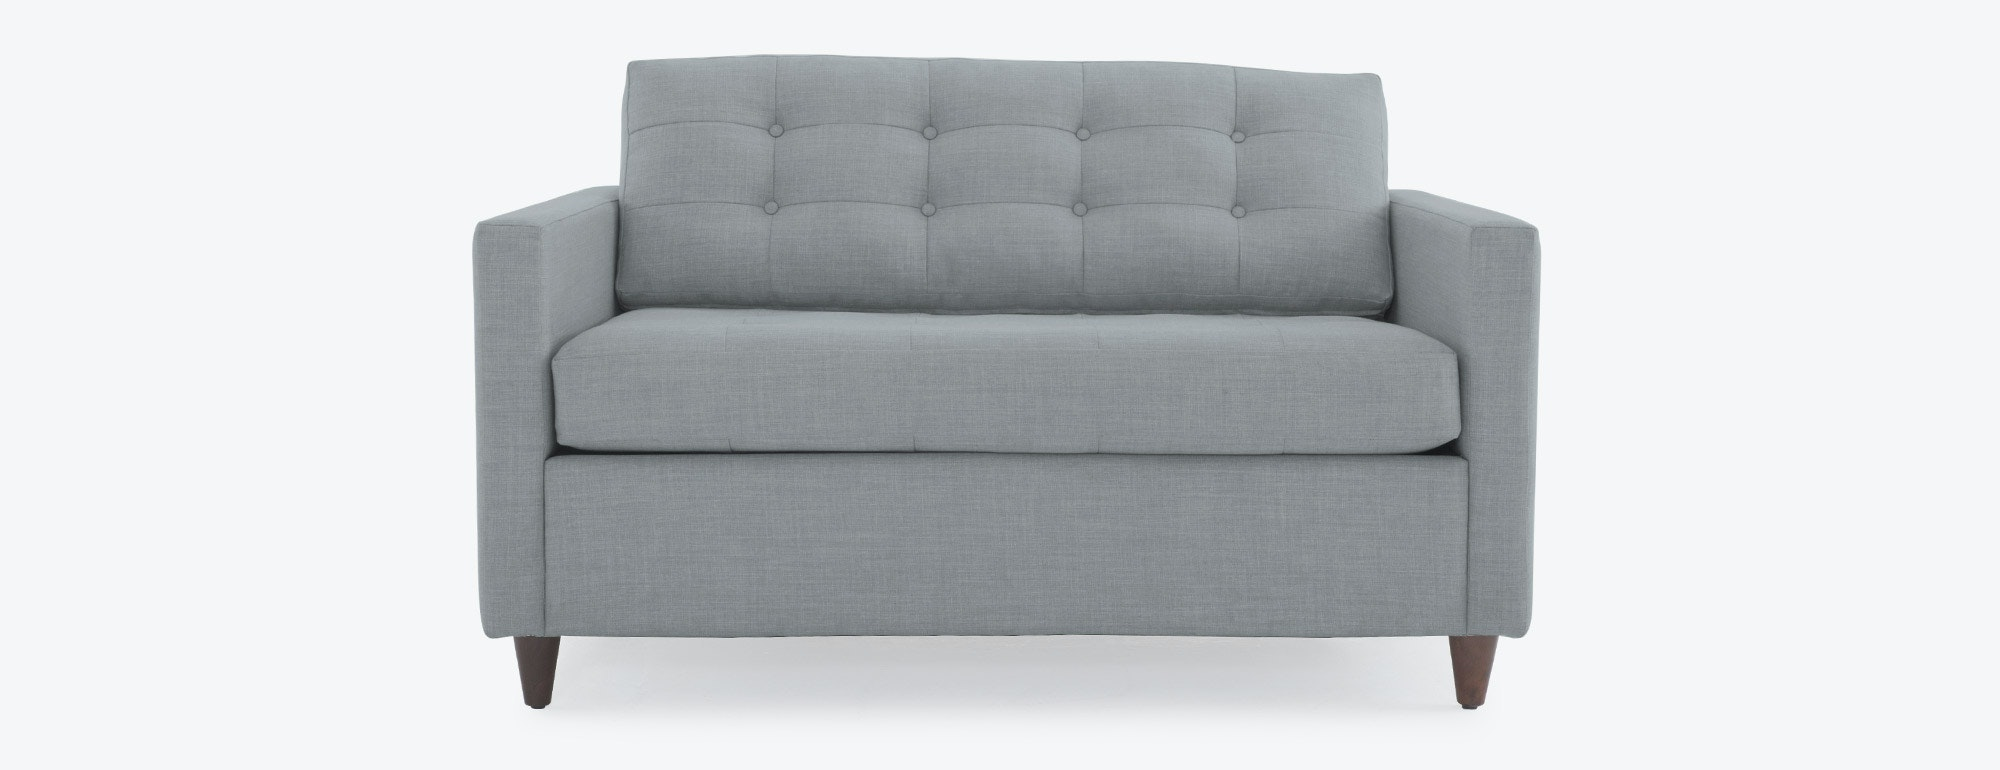 Sleeper Sofa Twin Sleeper Sofa Twin Ikea Sleeper Sofa Twin Mattress Home Design Ideas And